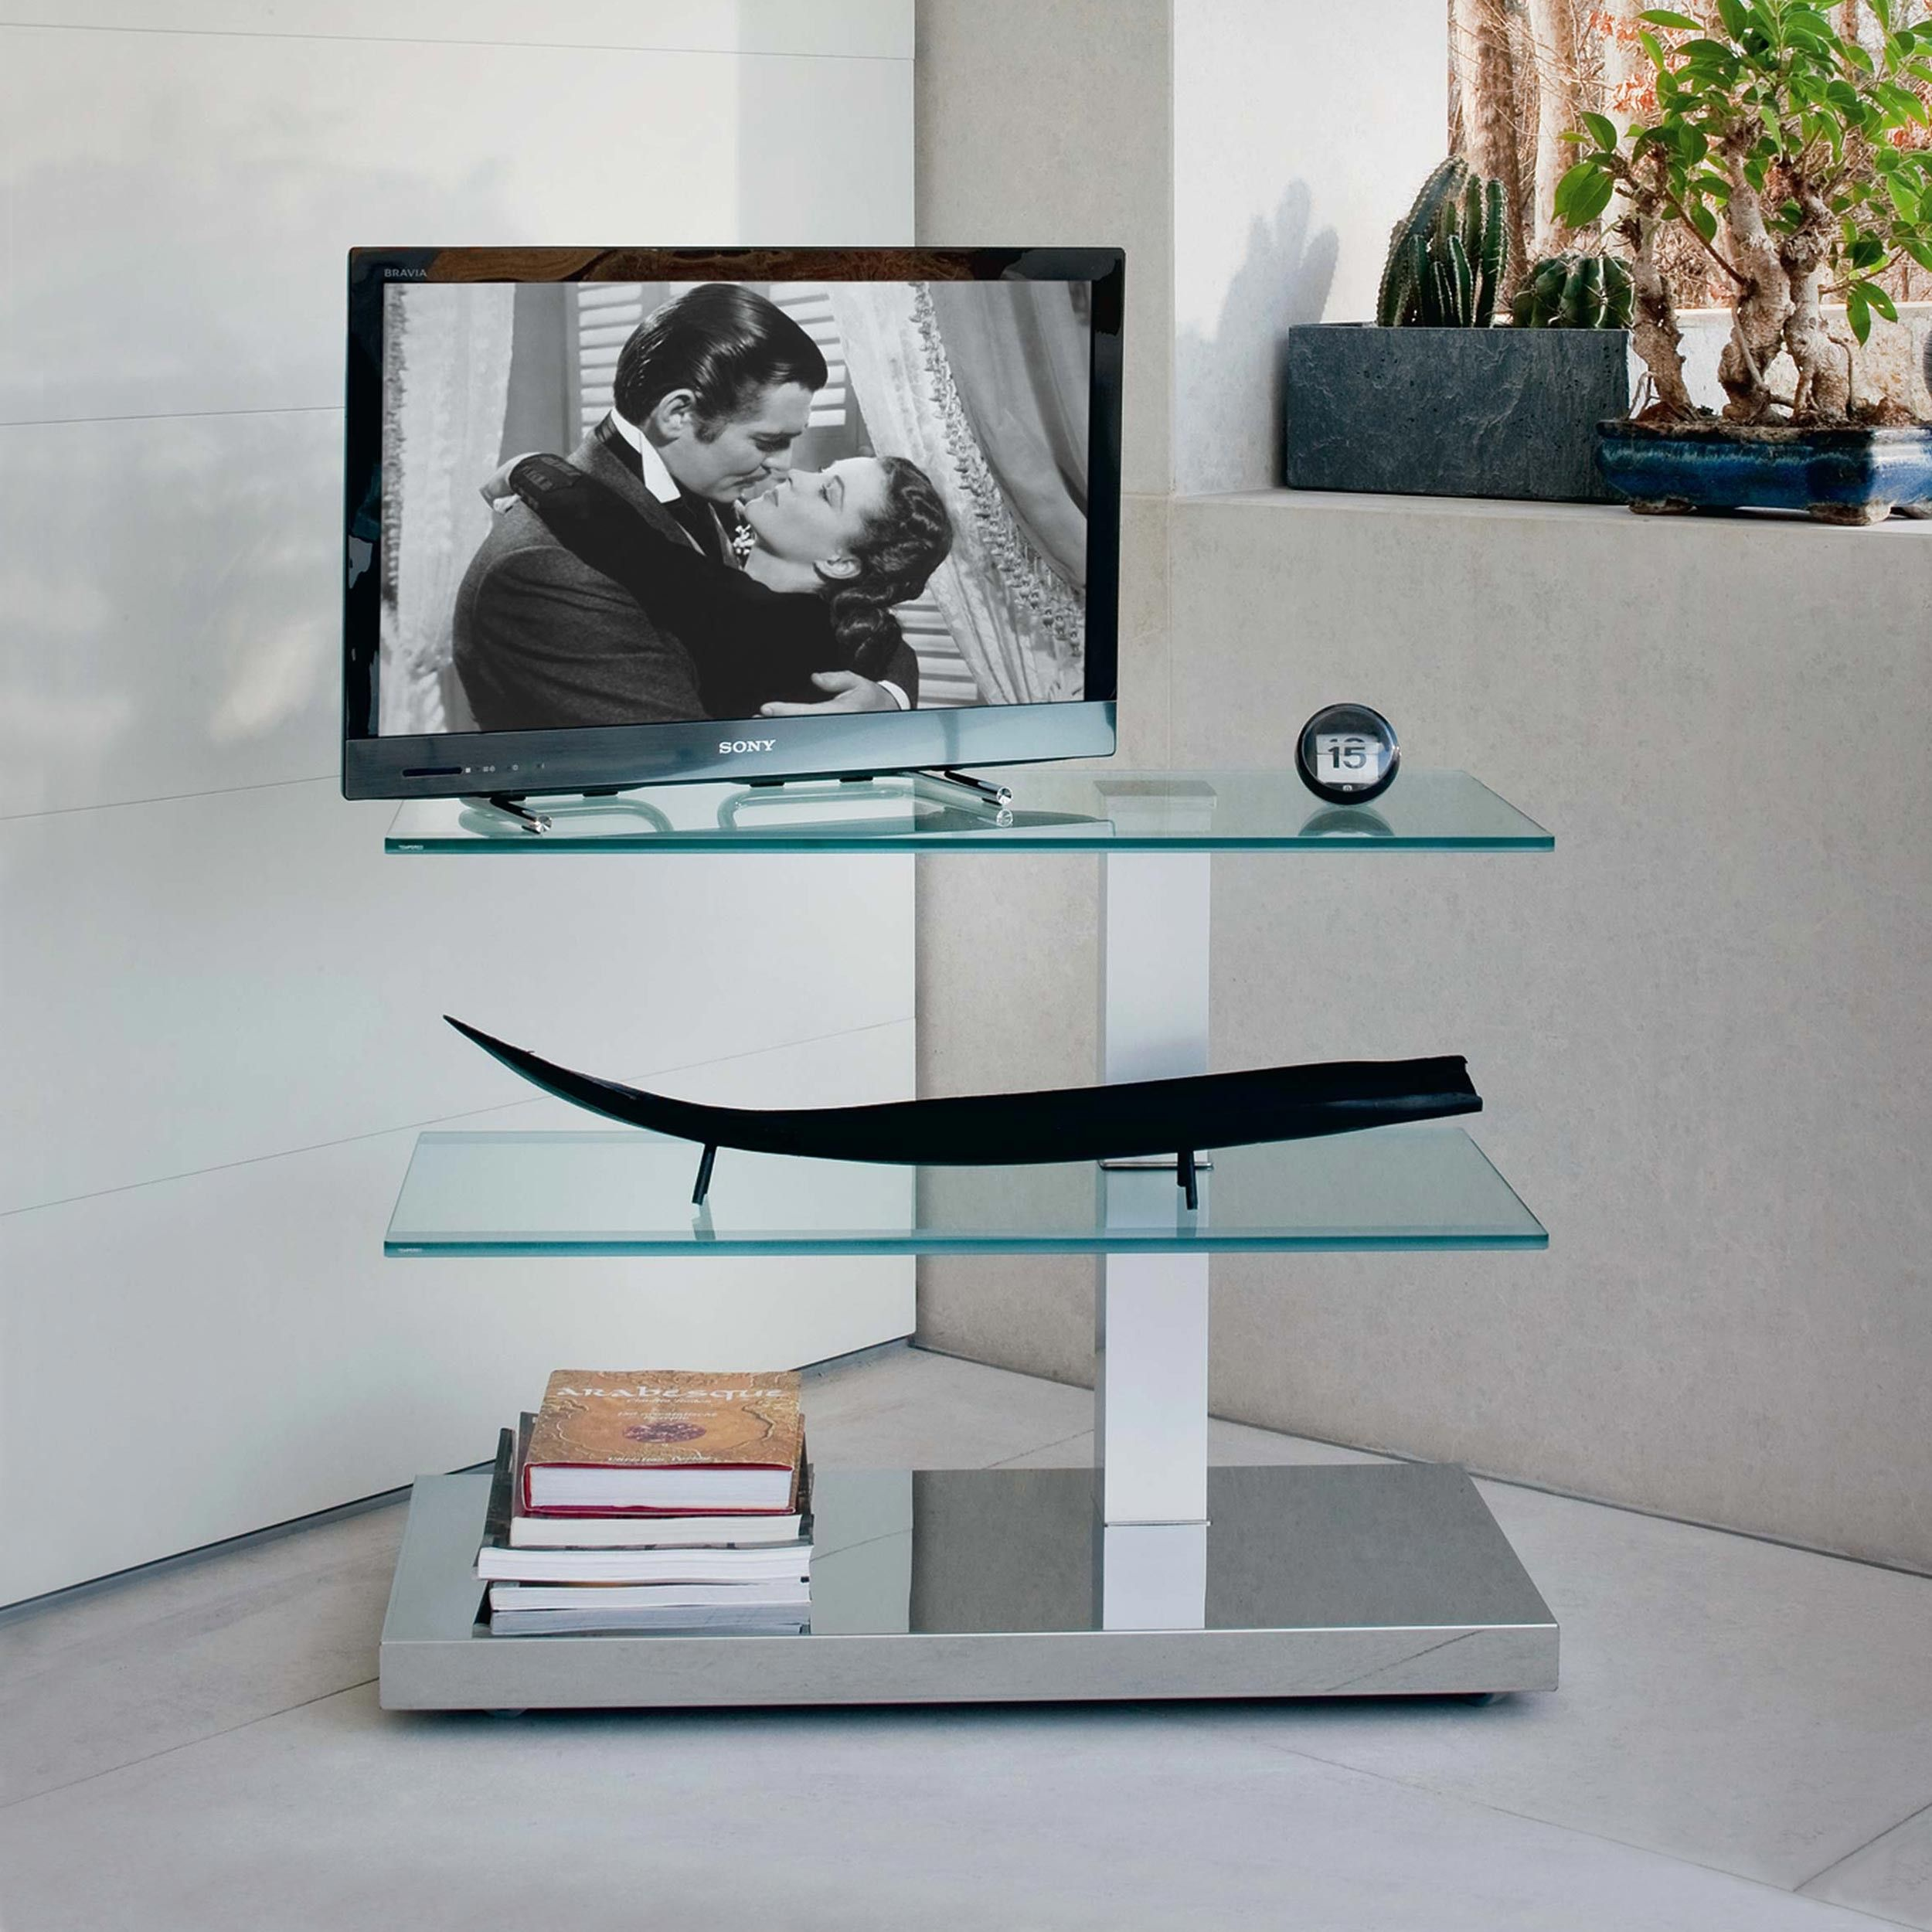 Porta Tv Cristallo Design.Tv Stand In Stainless Steel And Glass Mod Play Cattelan